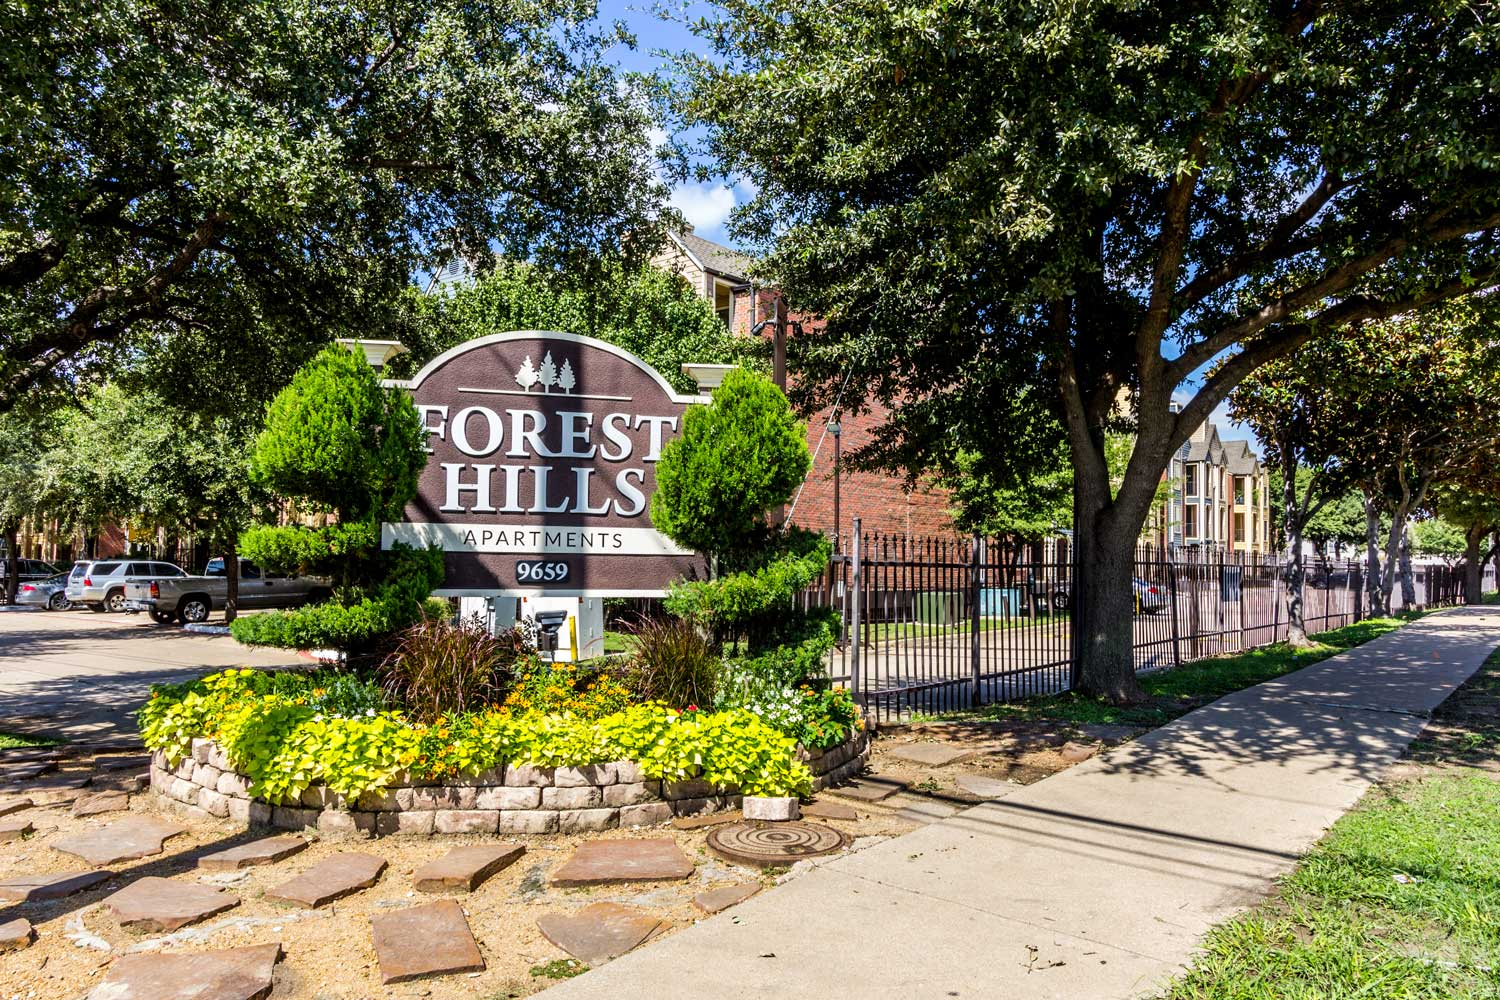 Professional On-Site Management at Forest Hills Apartments in Dallas, TX